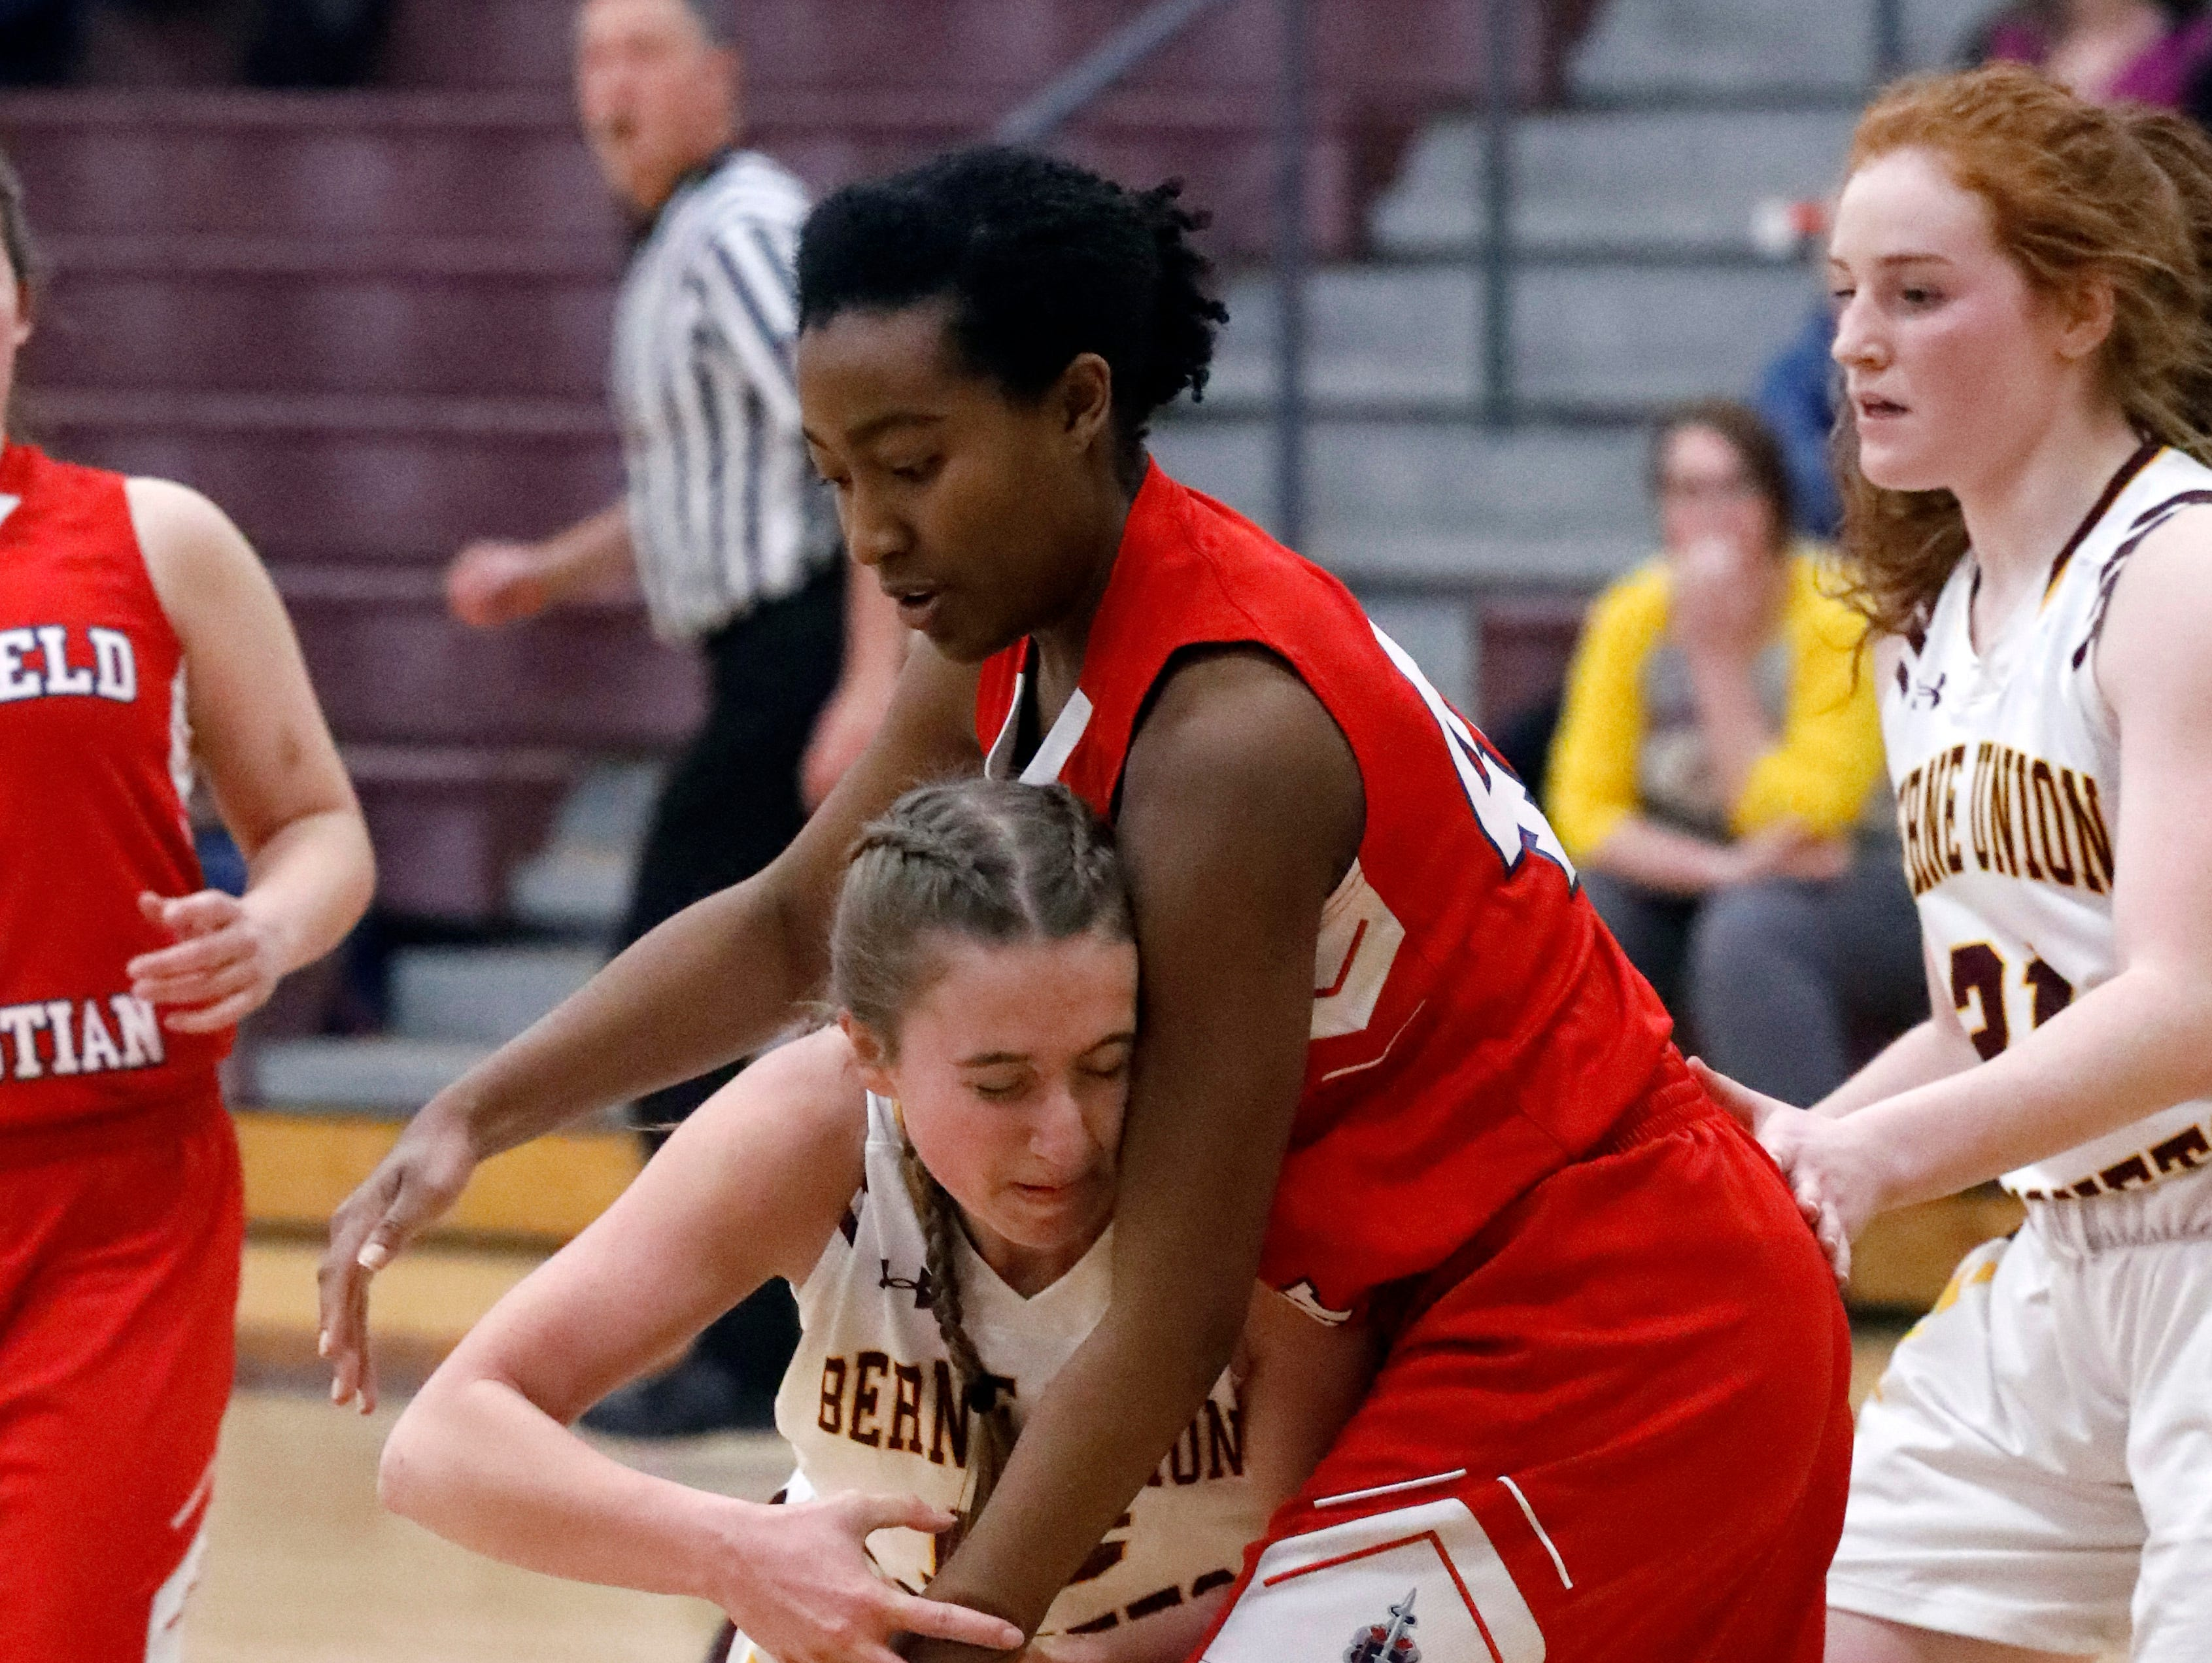 Berne Union's Emily Blevins collides with Fairfield Christian's Maame Adu Tuesday night, Jan. 29, 2019, at Berne Union High School in Sugar Grove. The Knights defeated the Rockets 84-37.